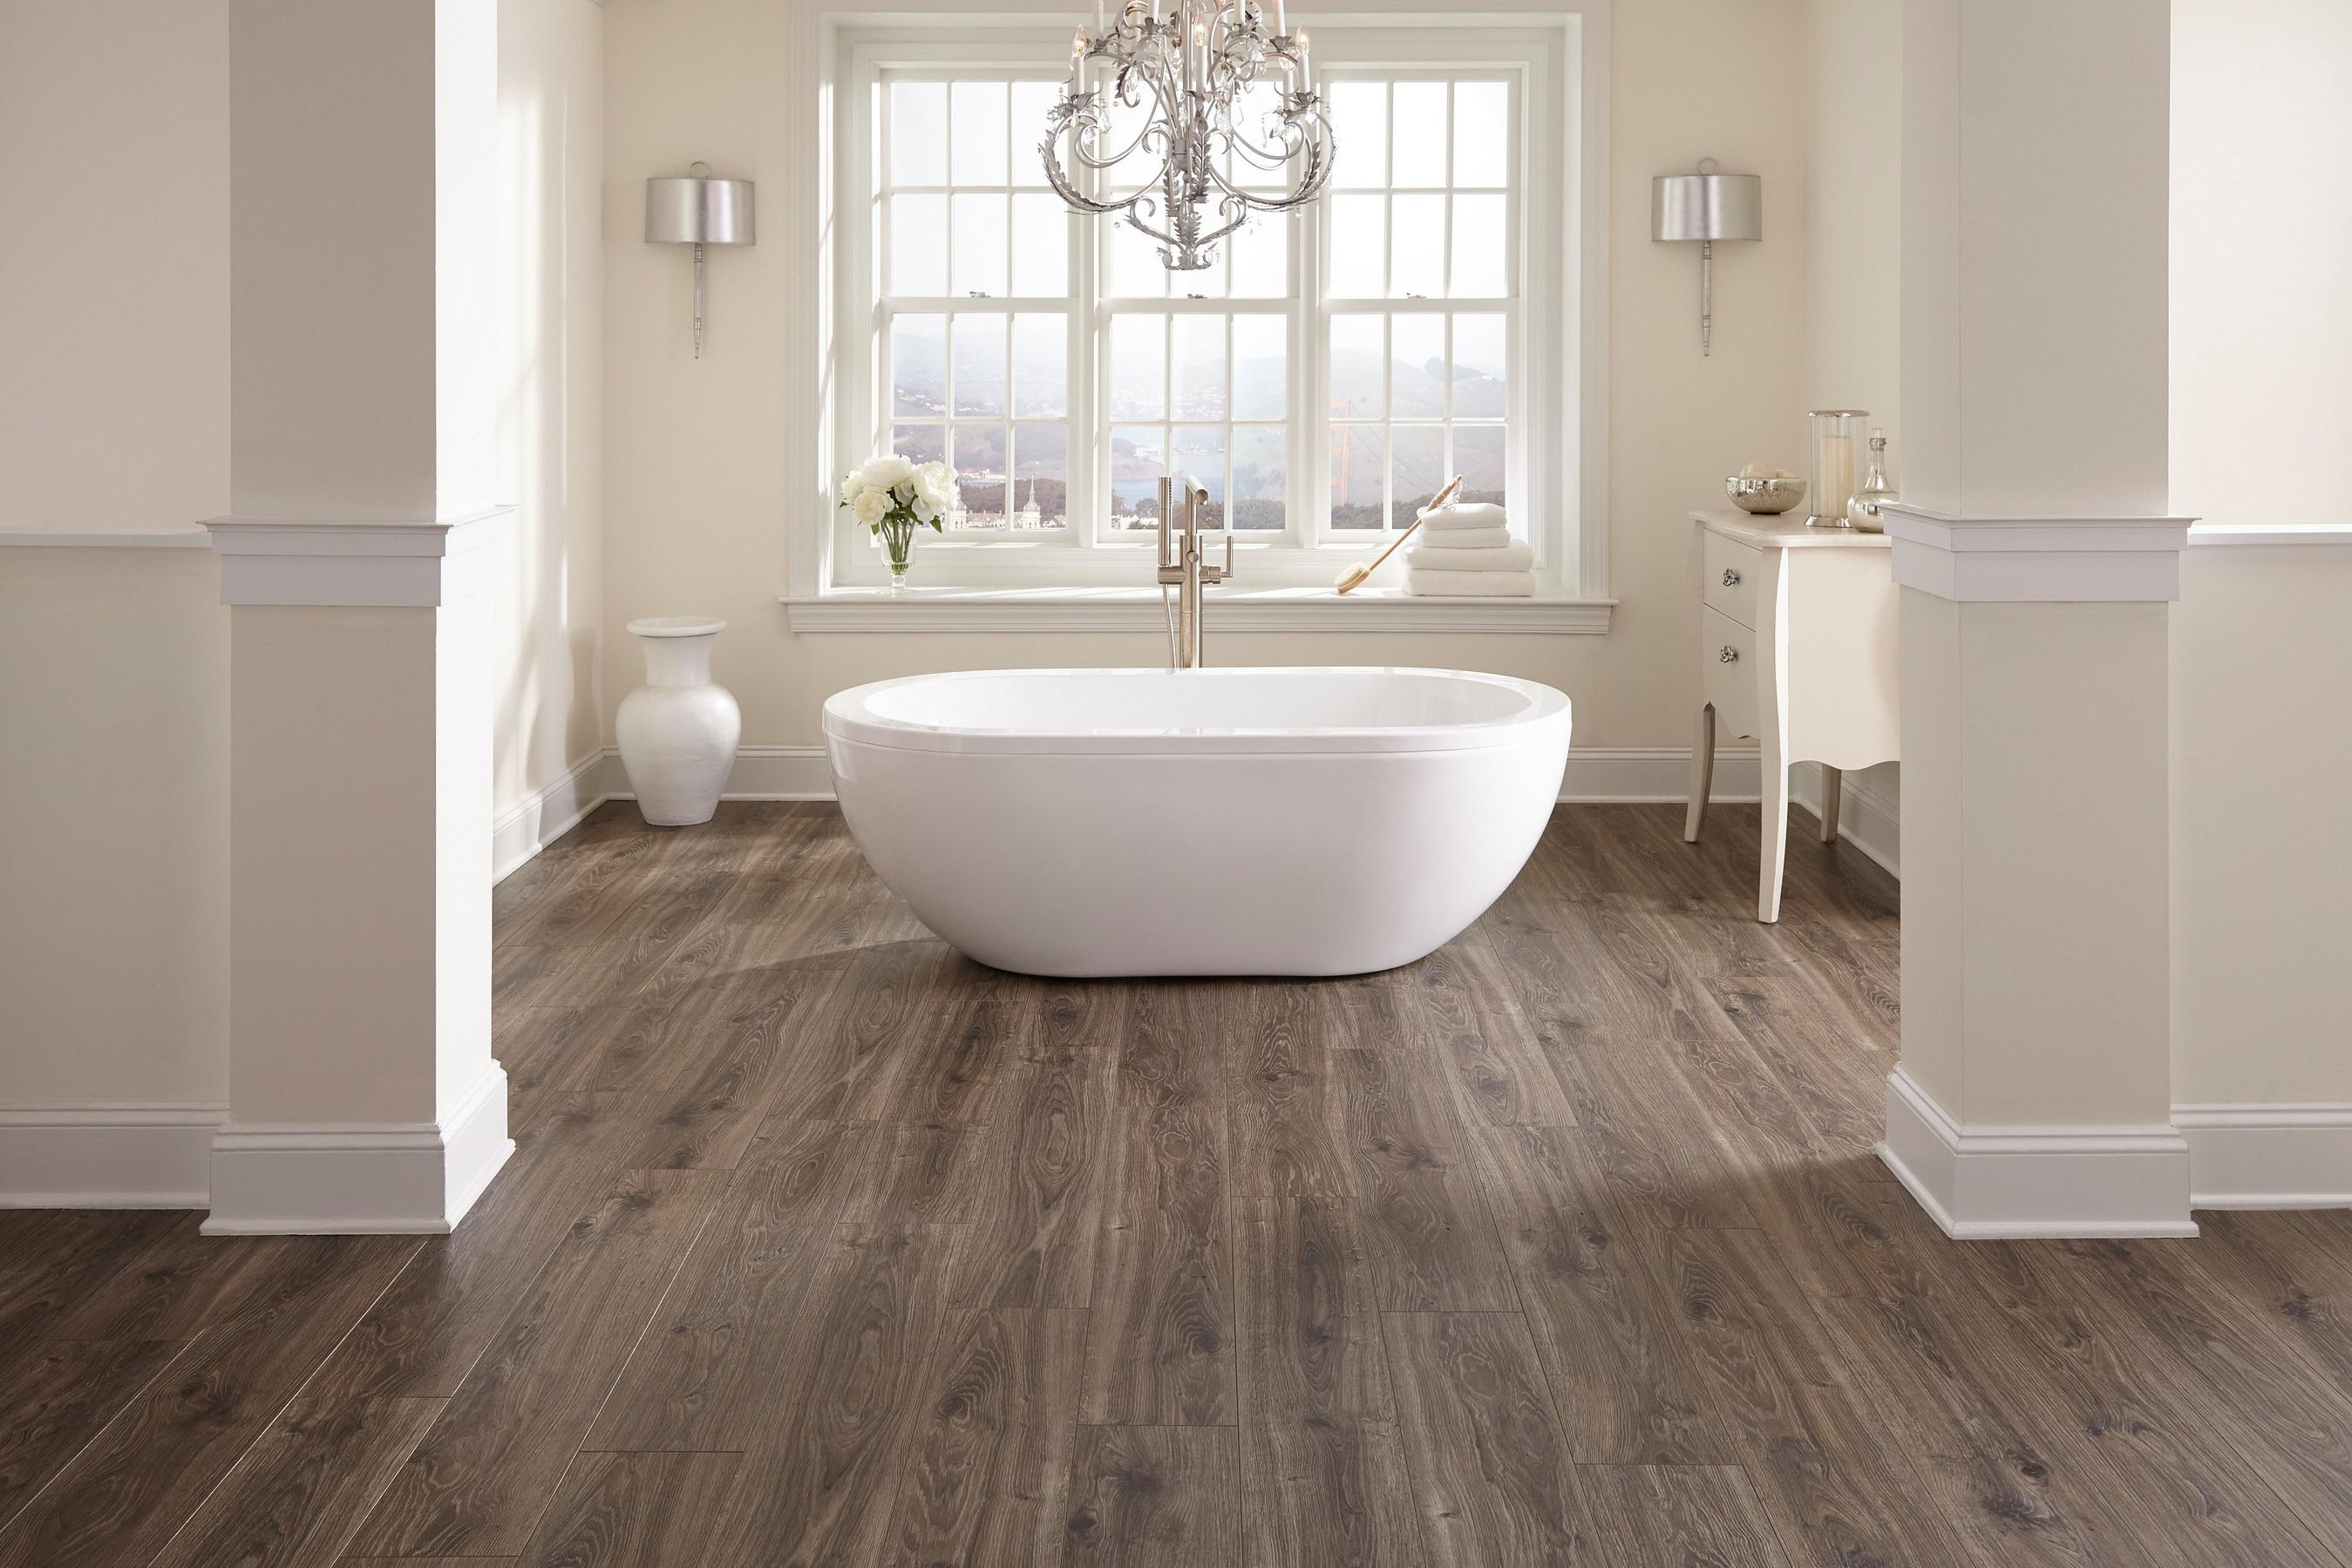 Bathroom 19 Aquaguard Smoky Dusk Water Resistant Laminate Floor Room